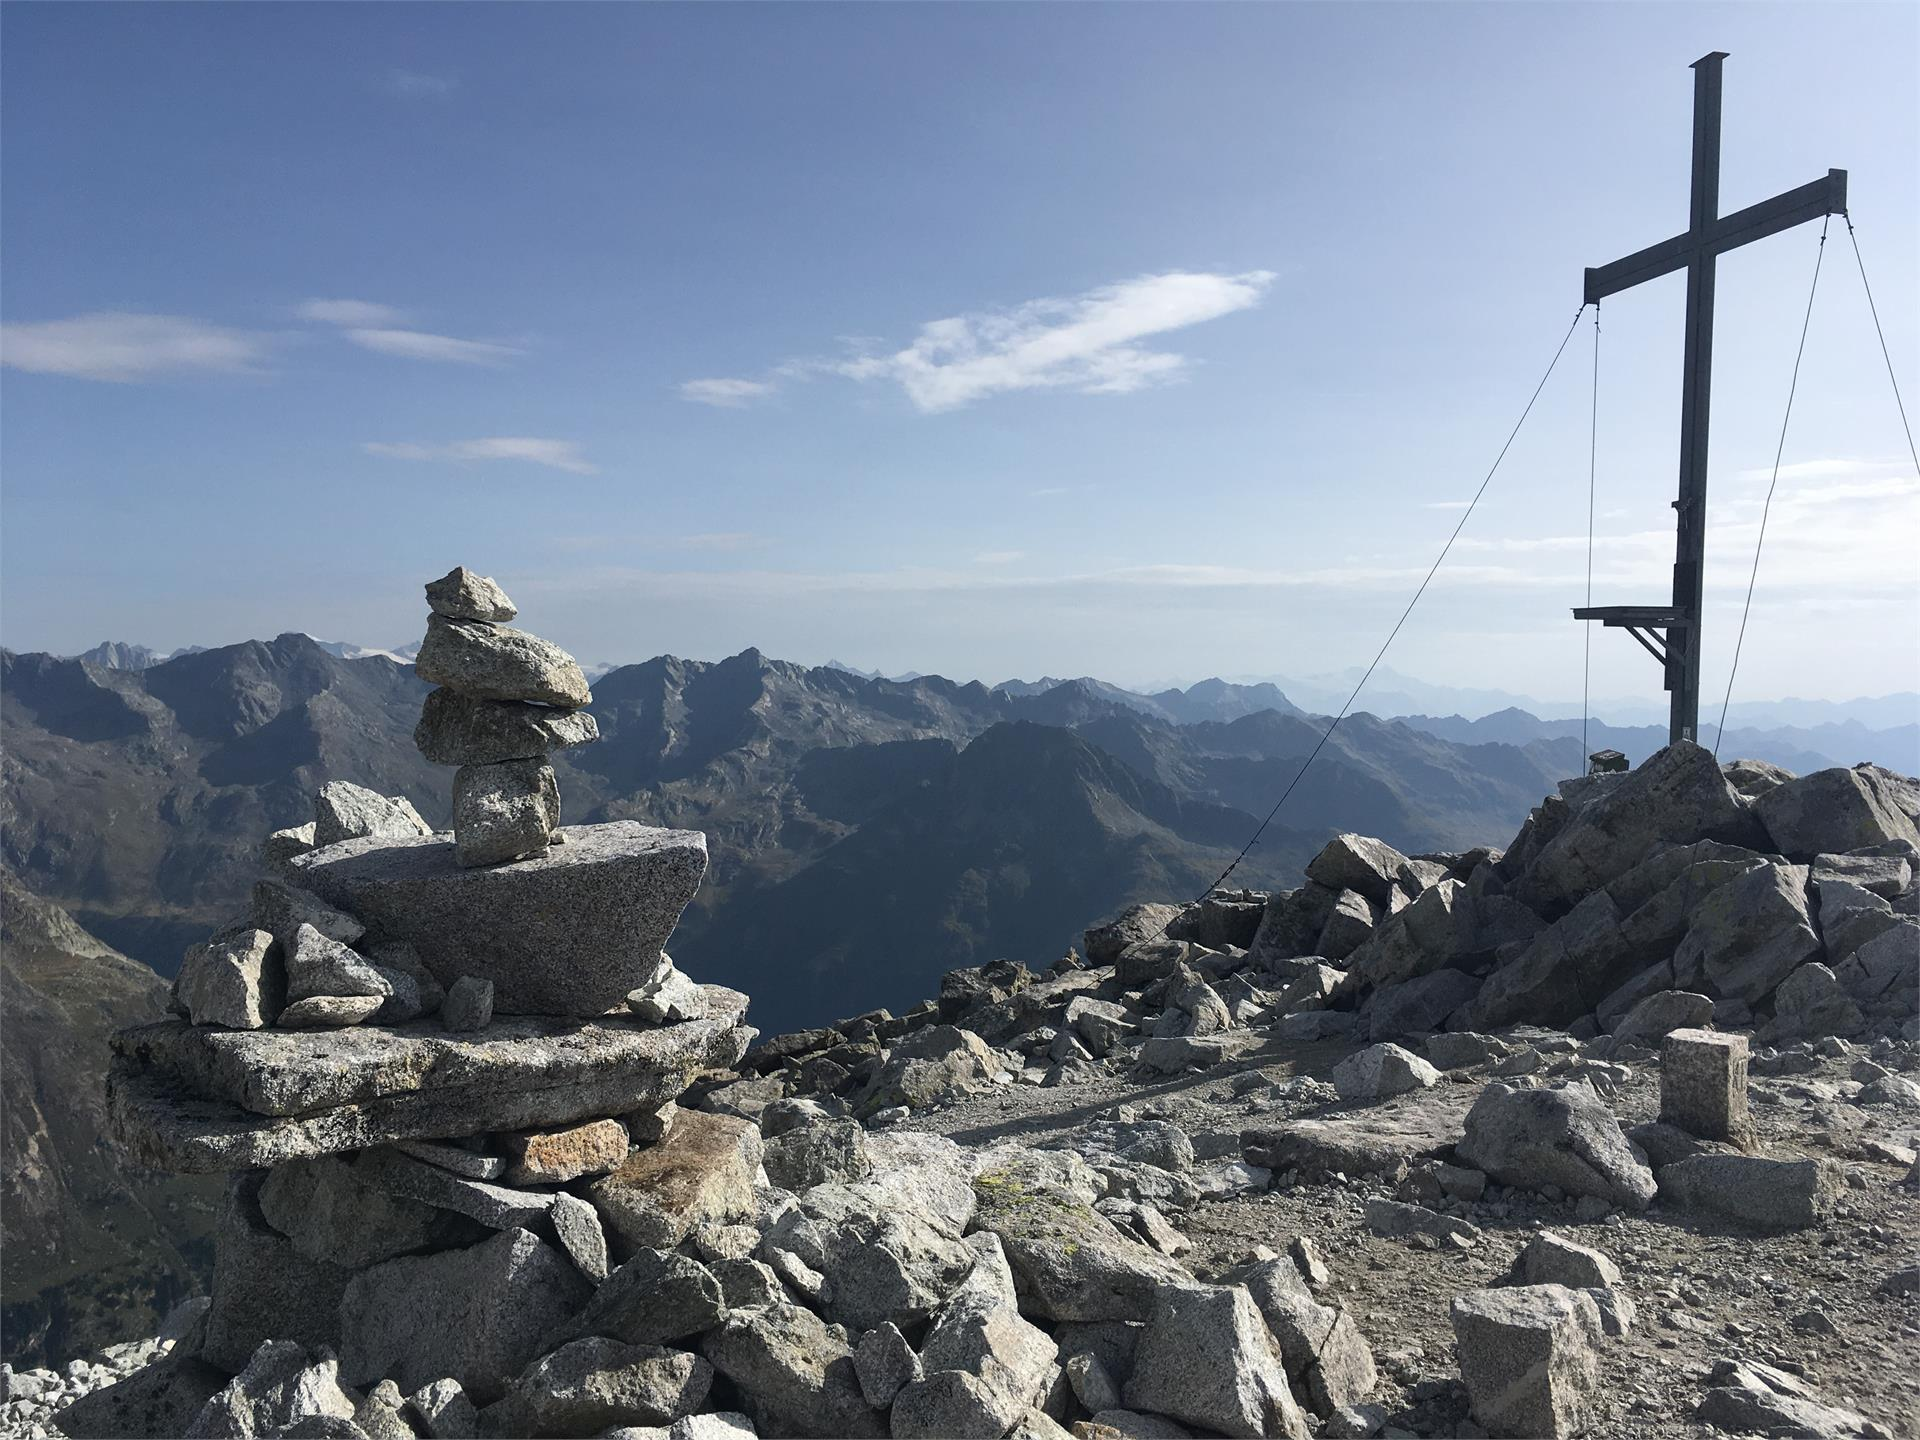 Hiking: Mount Almerhorn 2.986m - Barmerhütte hut 2.610m - Antholzersee / Lago di Anterselva Lake